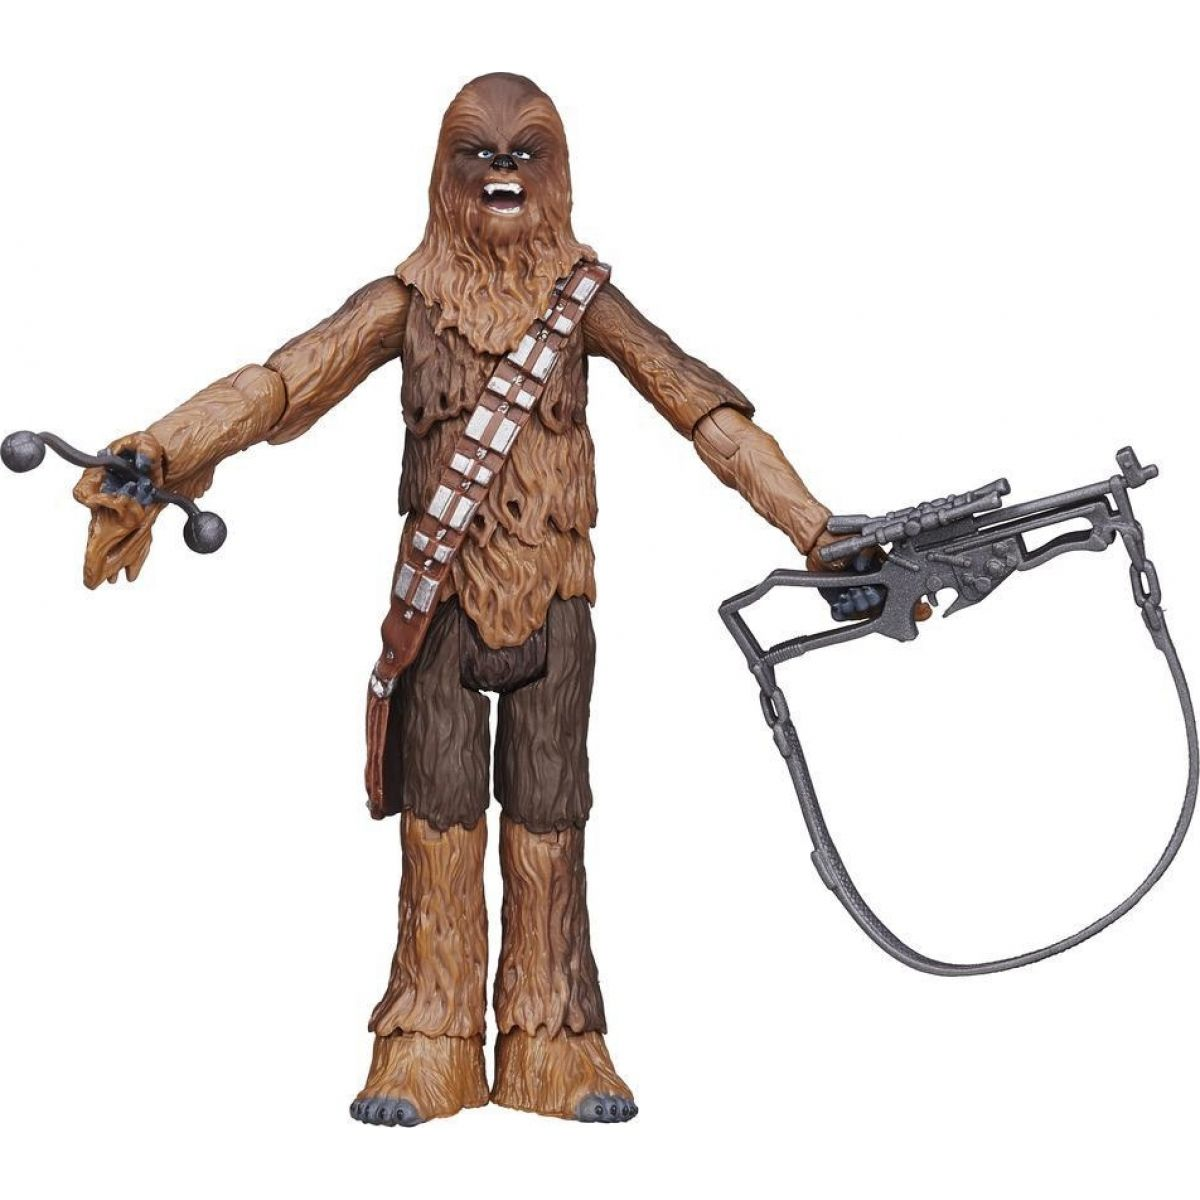 Star Wars The Black Series Hasbro A5077 - Chewbacca